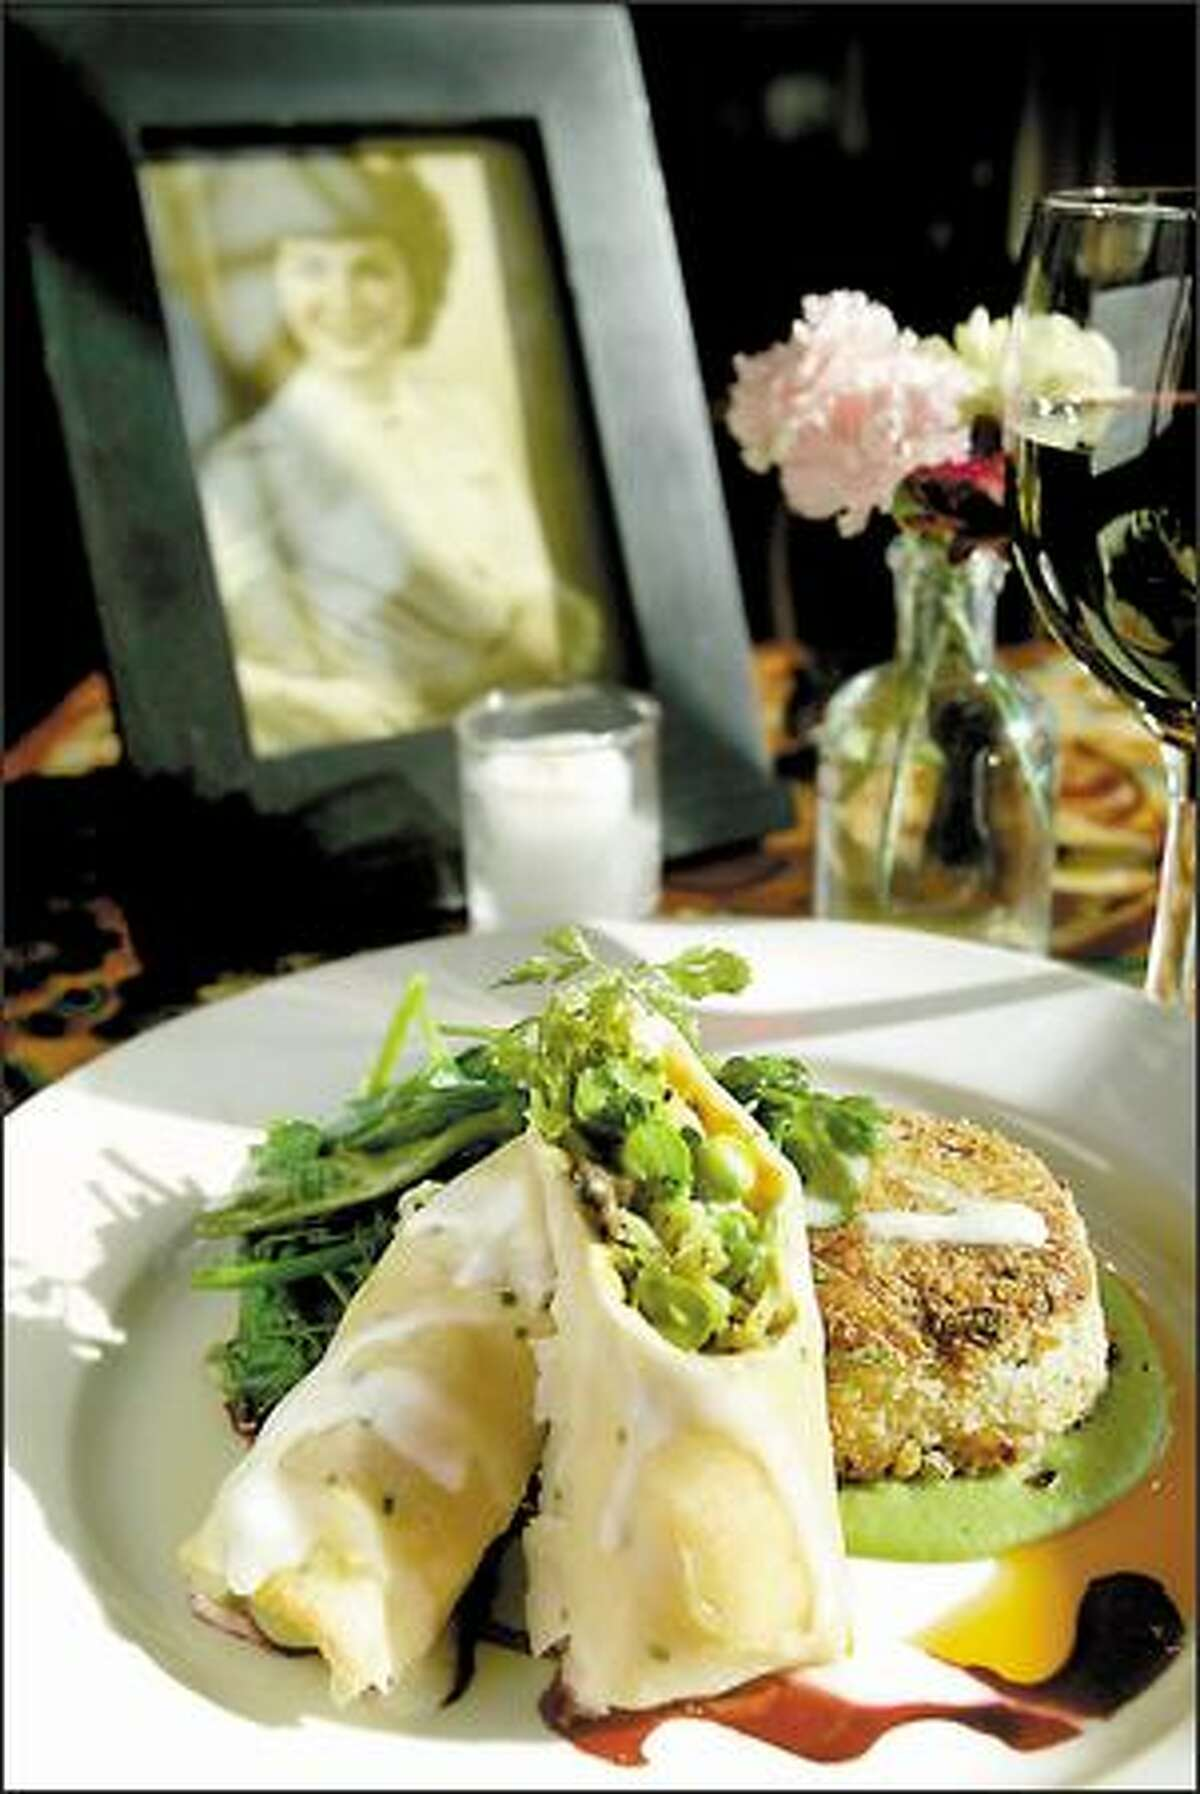 Crepes with English peas, morels and sauteed leeks are served with a pan-seared bean cake at Carmelita's, named for the woman in the photo, the mother of co-owner Michael Hughes.